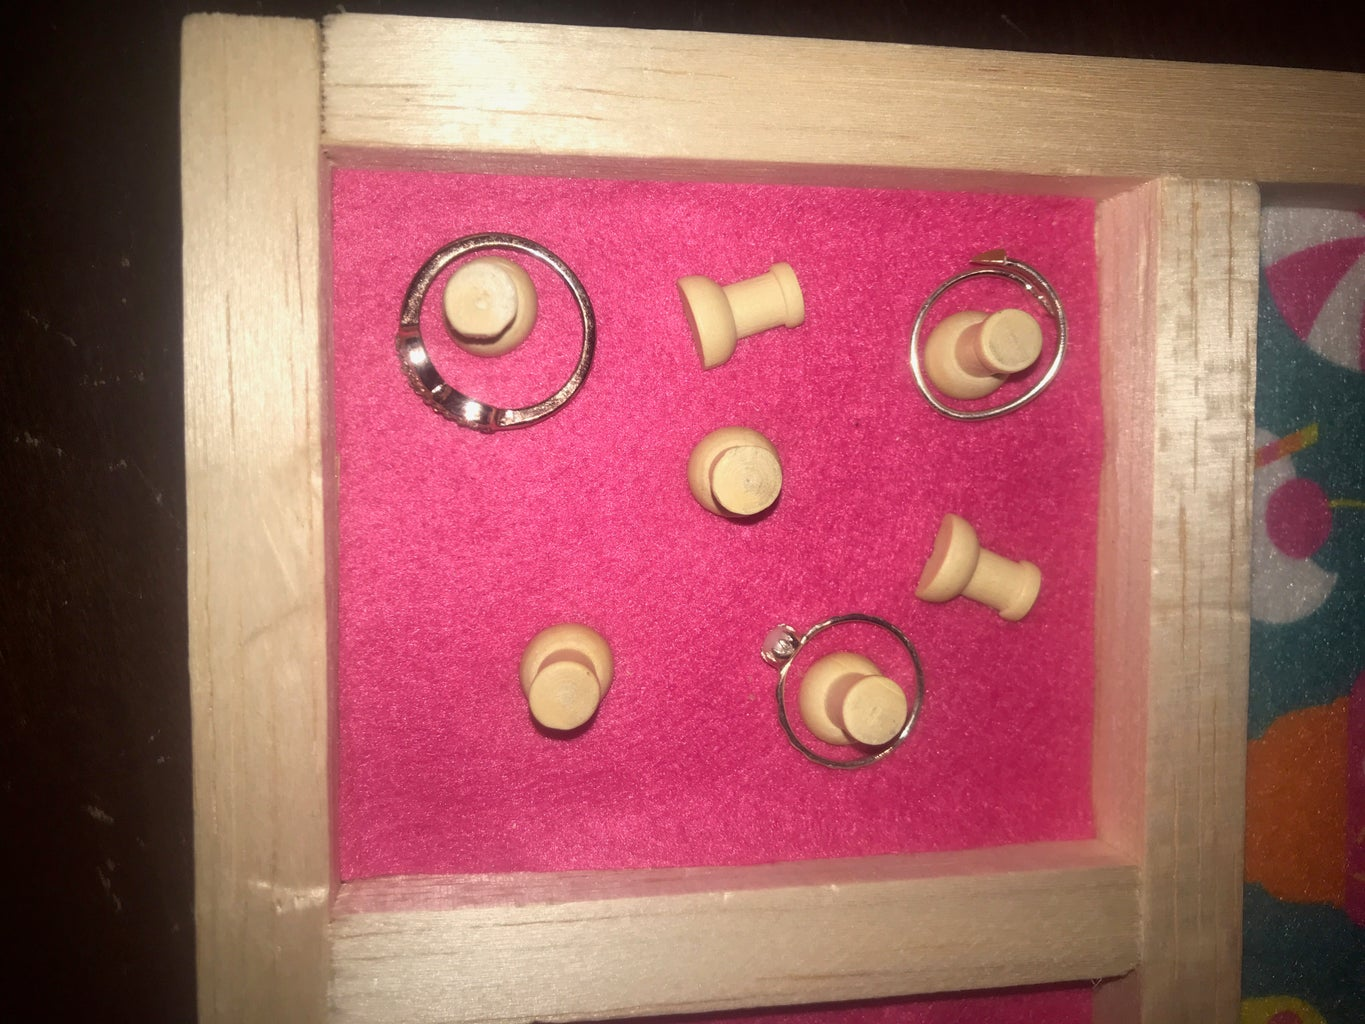 Attaching Hooks for Necklaces and Rings